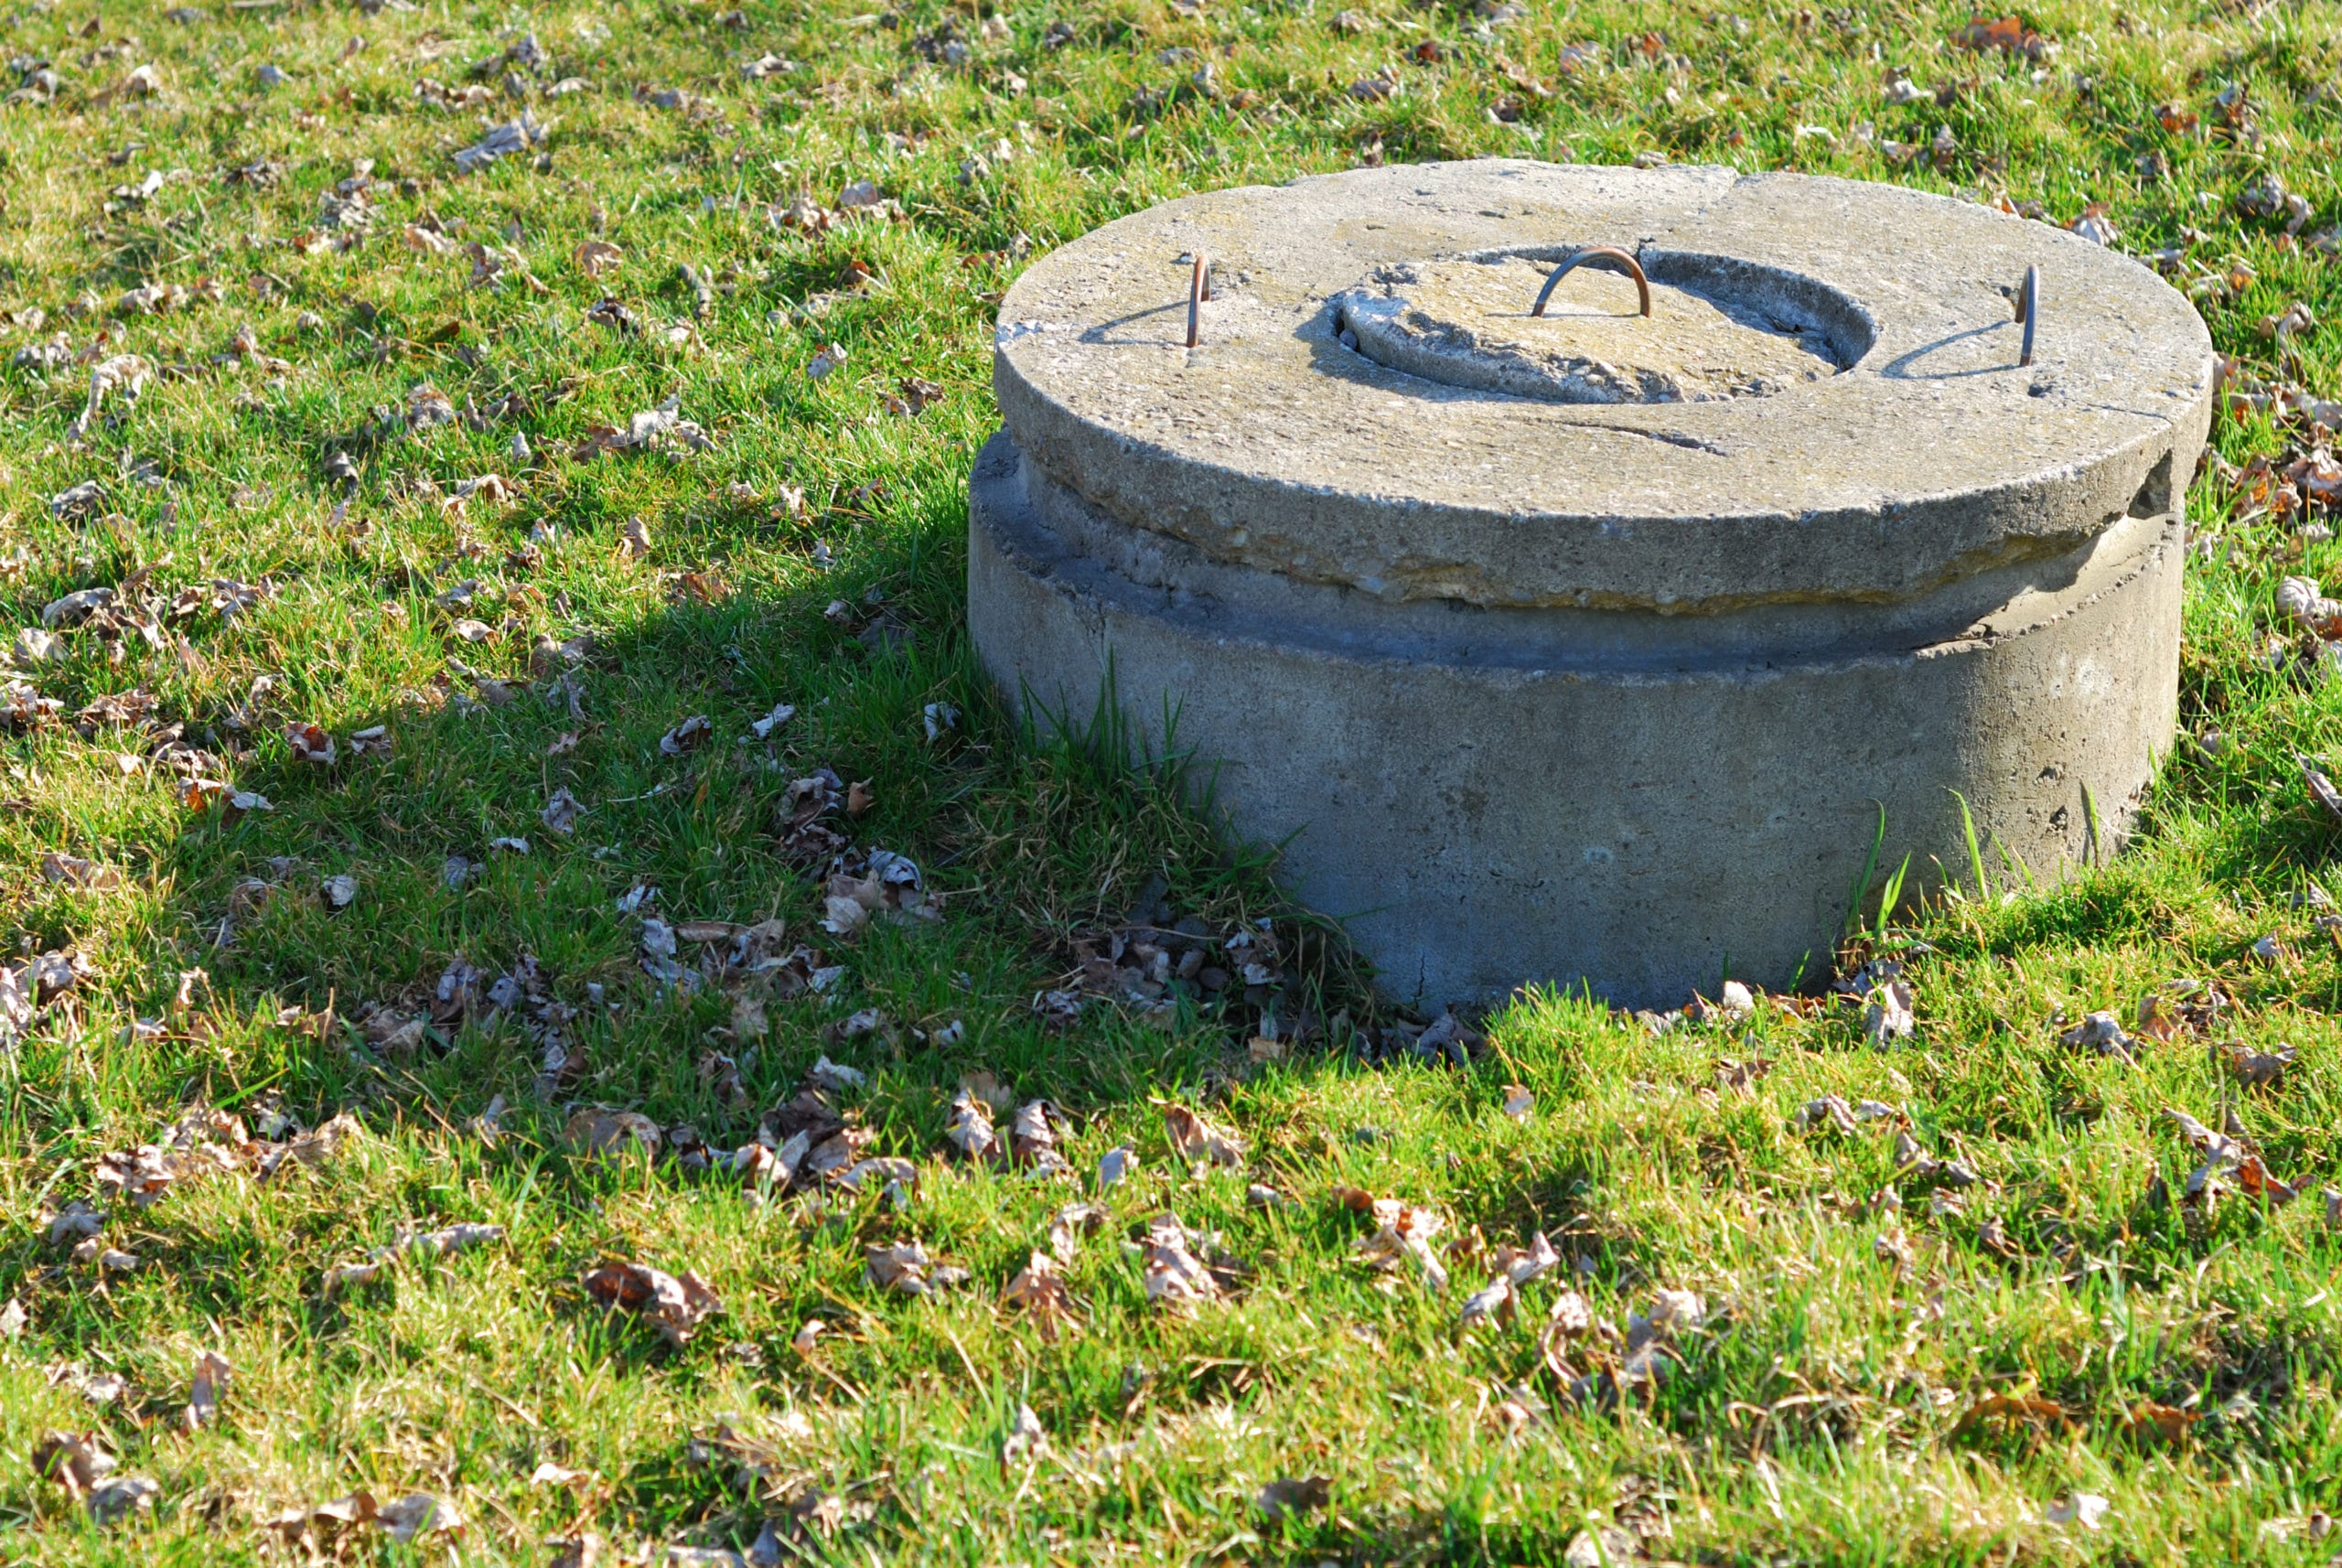 Image of concrete well